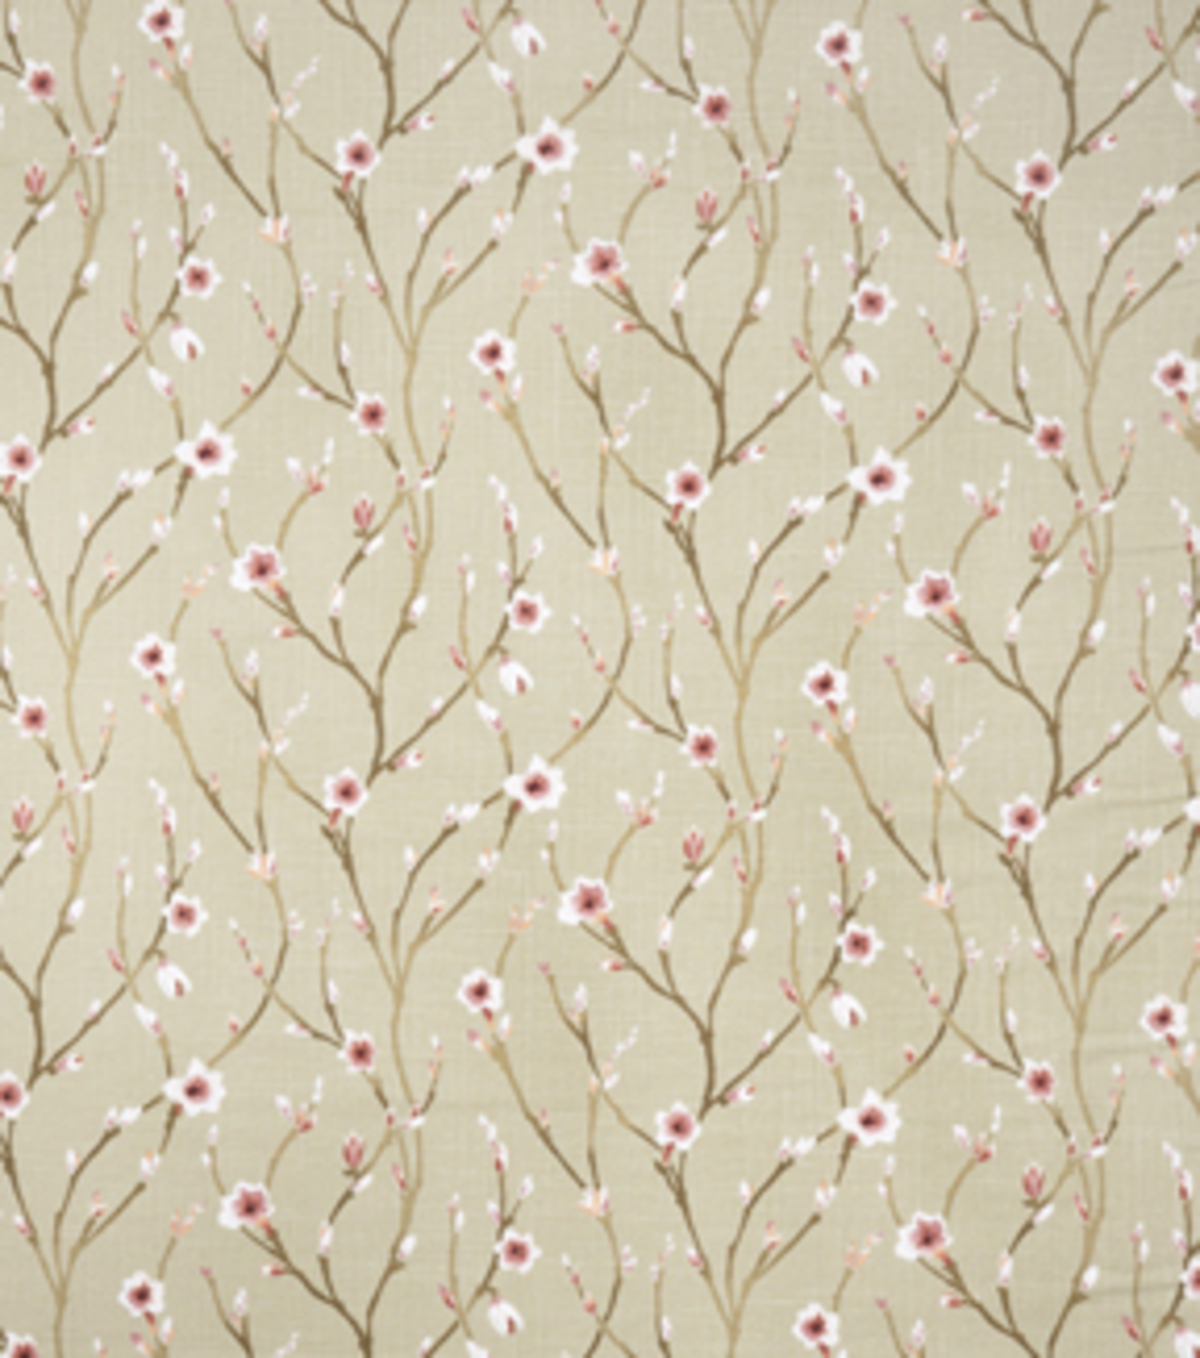 Home Decor 8\u0022x8\u0022 Fabric Swatch-SMC Designs Creek / Basil